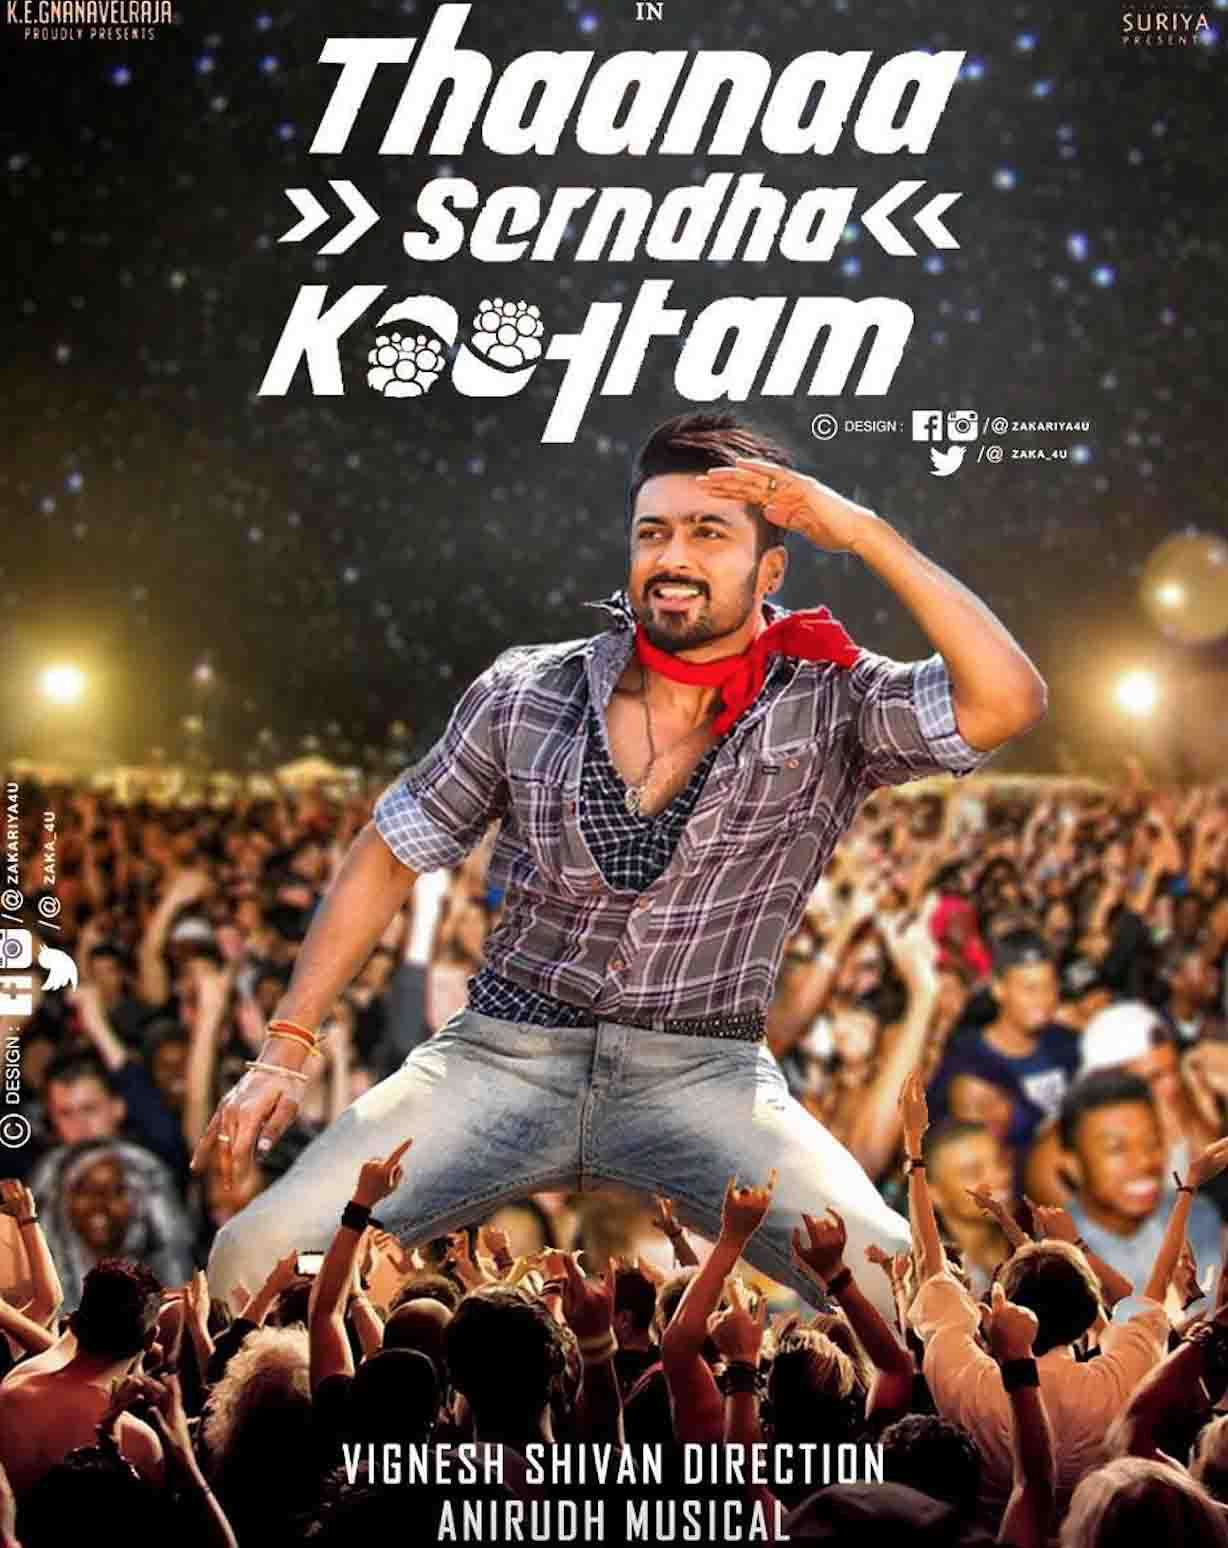 Suriya, Keerthy Suresh Tamil movie Thaanaa Serndha Koottam 2017 wiki, full star-cast, Release date, Actor, actress, Song name, photo, poster, trailer, wallpaper